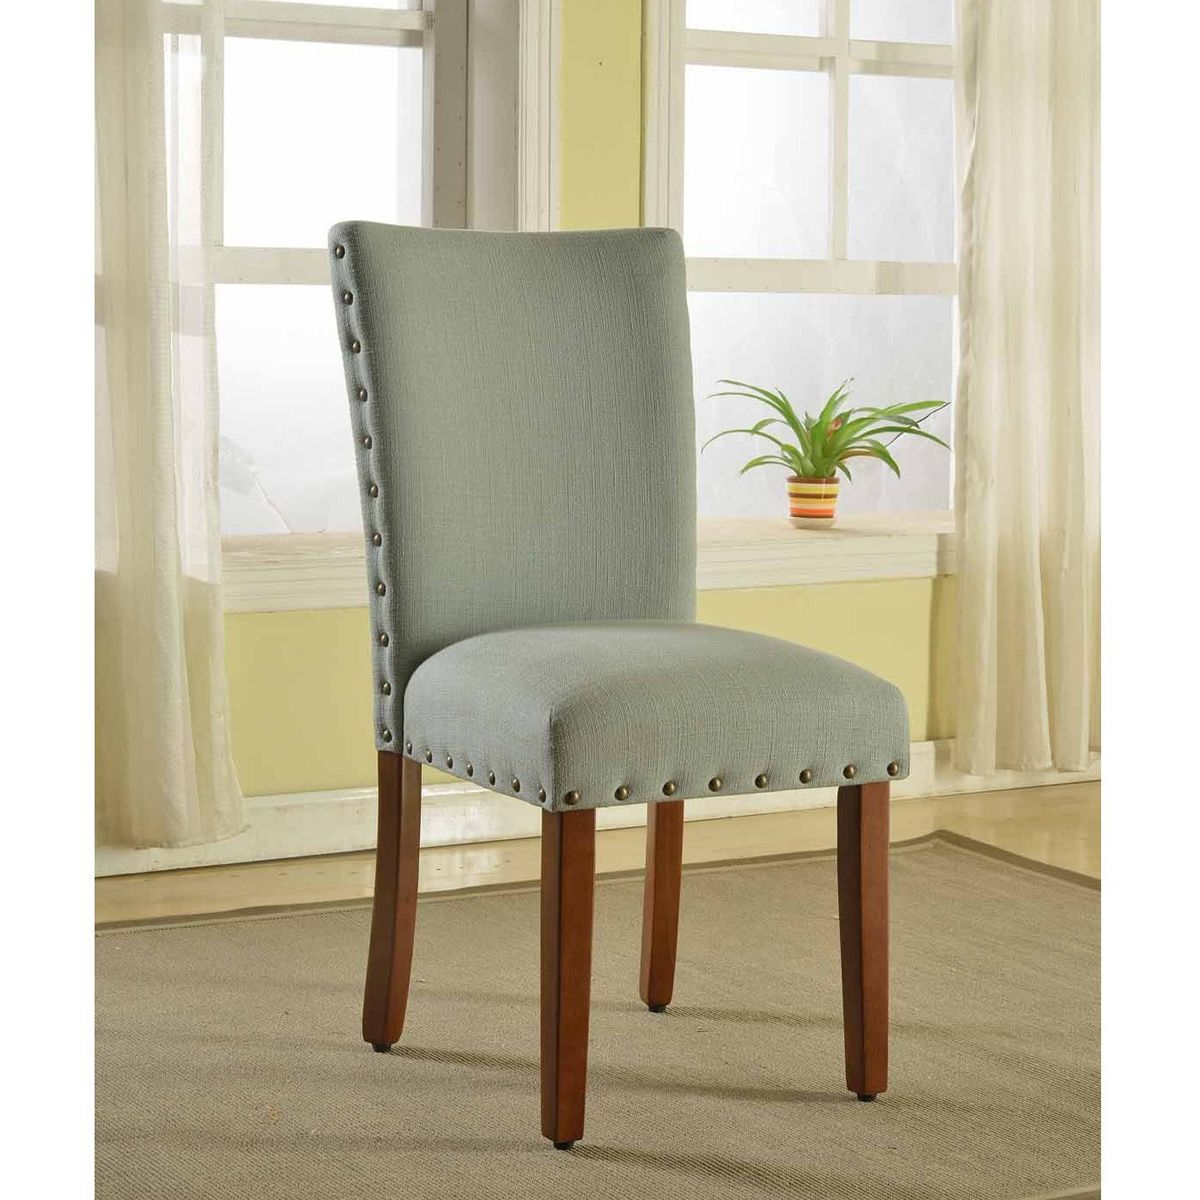 With this set of two sea foam green parsons chairs you can turn